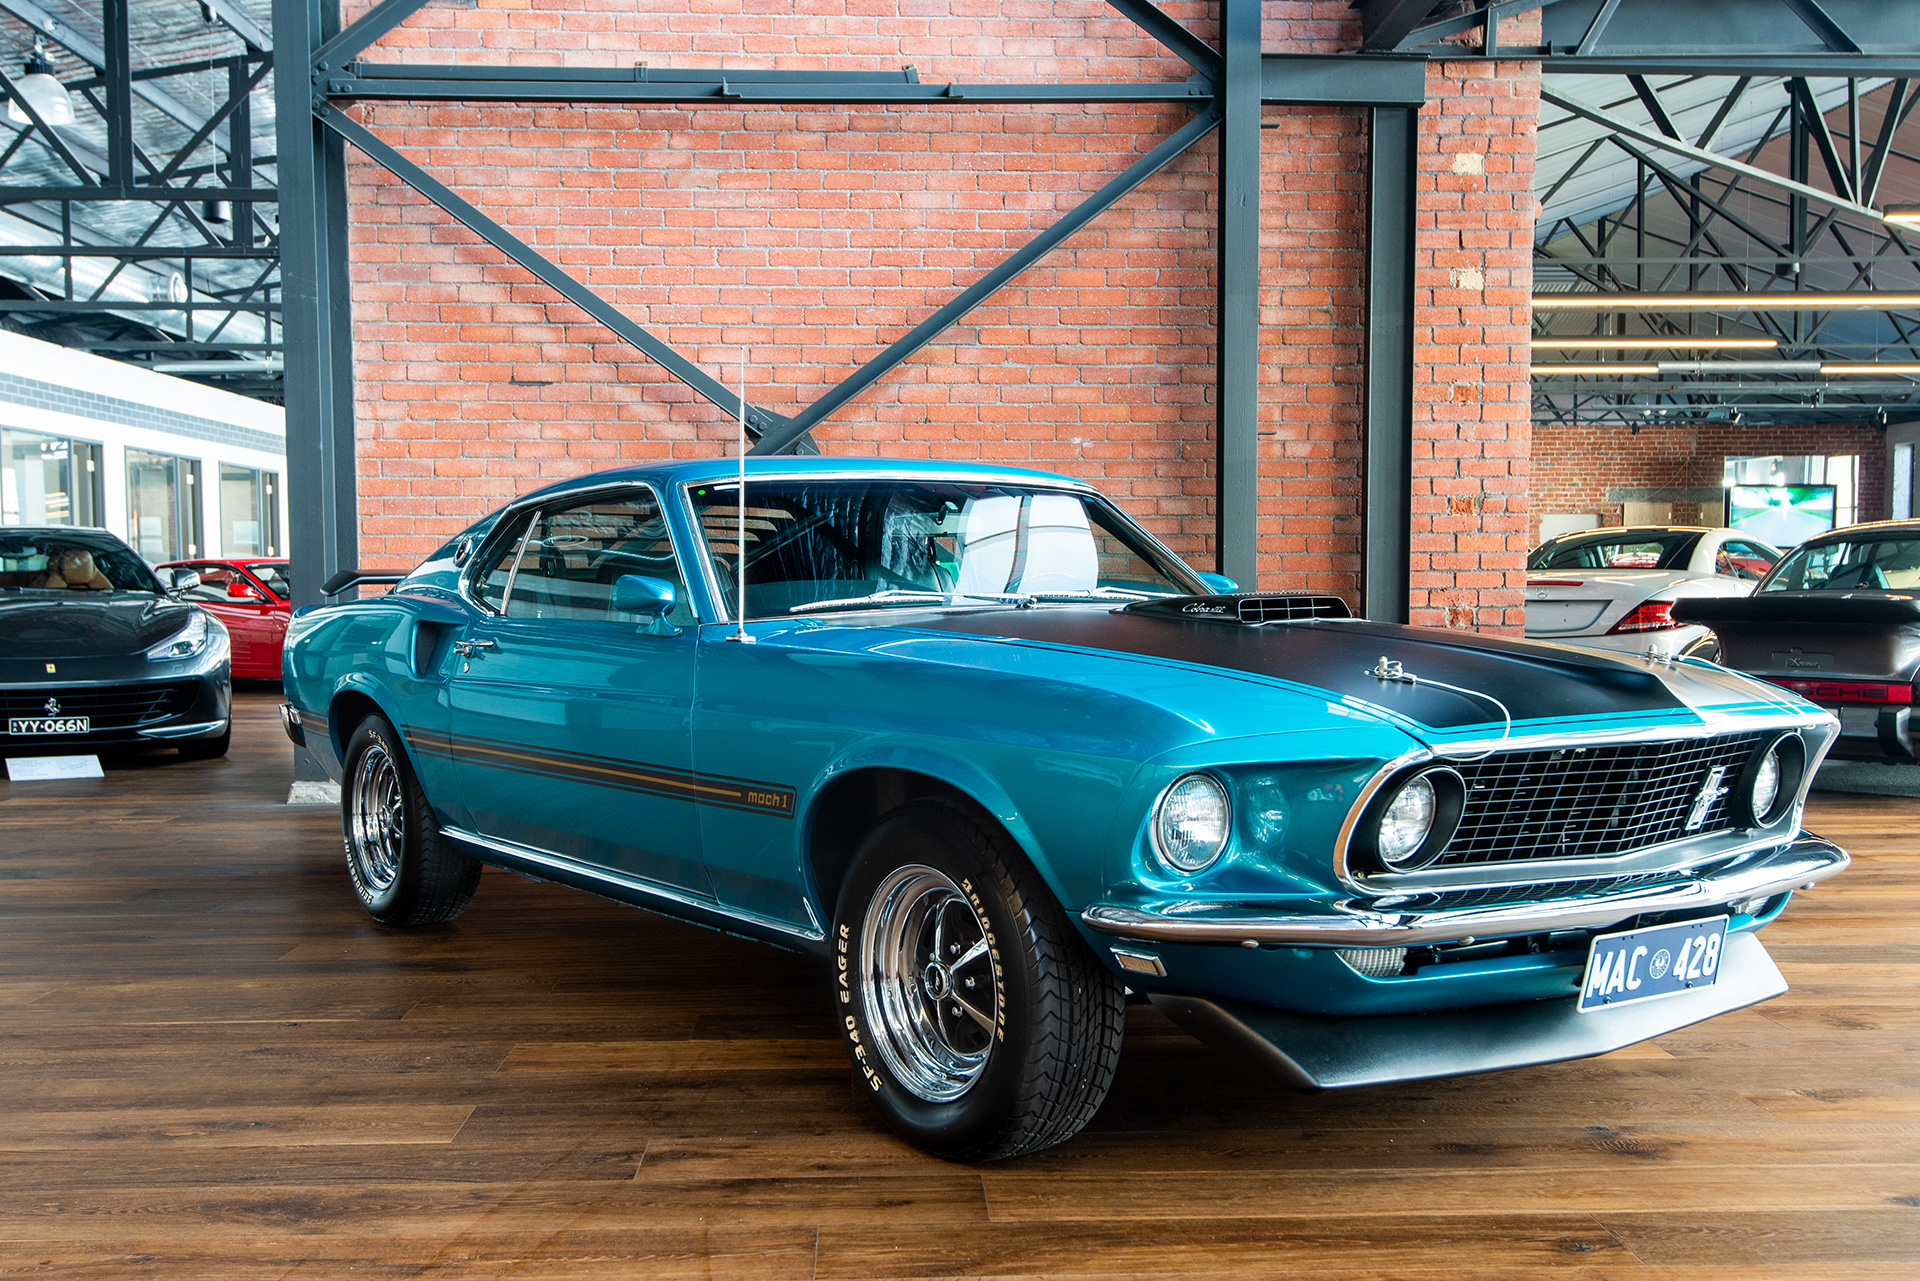 1969 Ford Mustang Mach 1 428 Cobra Jet Richmonds Classic